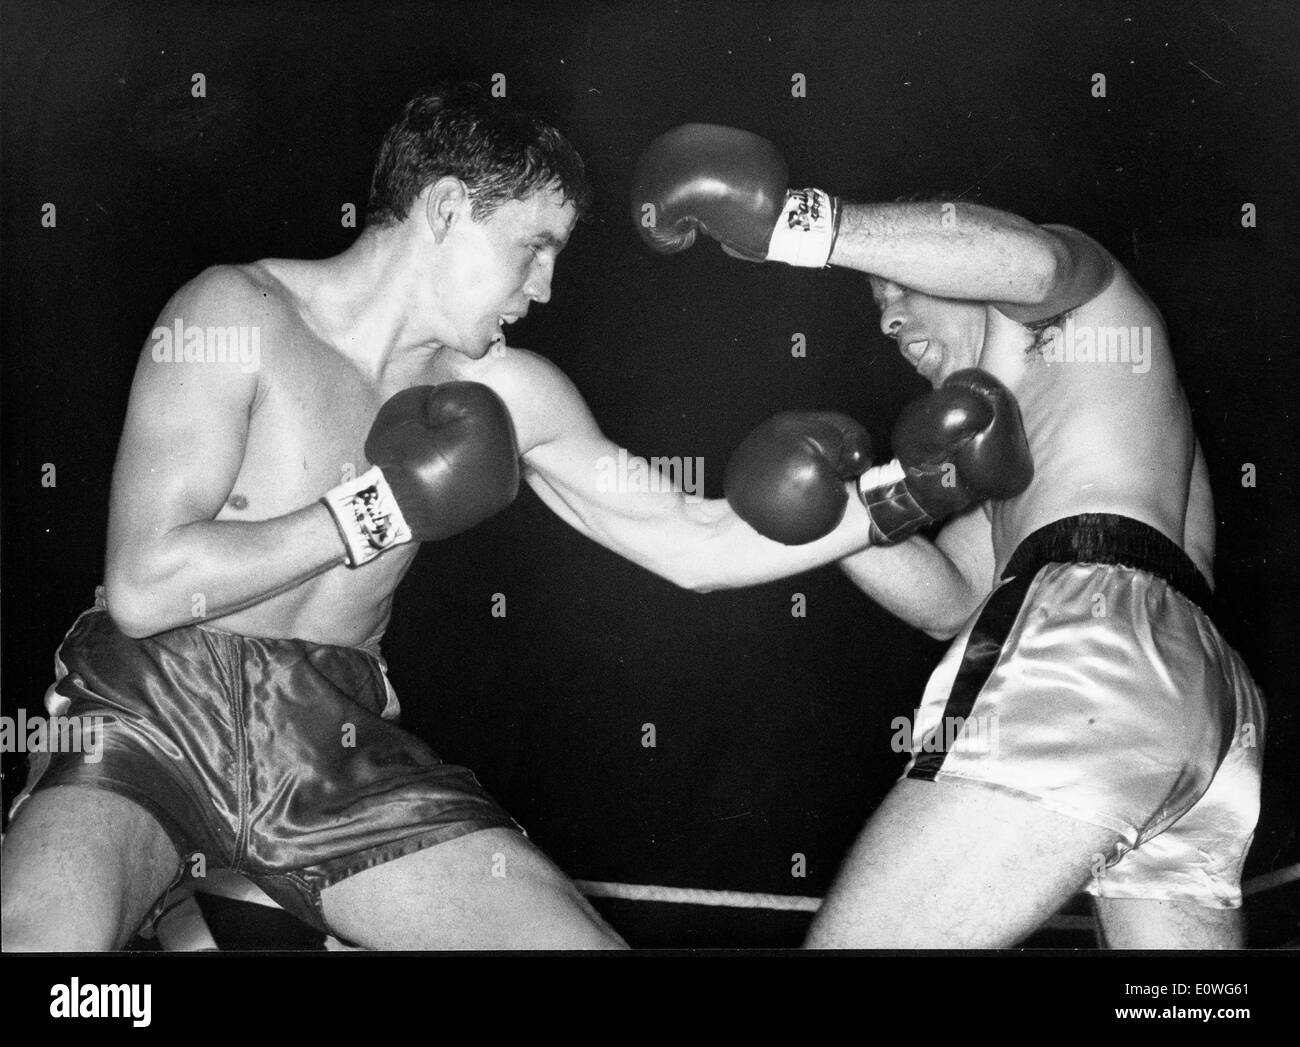 Boxers Terry Downes and Phil Moyer face off at Wembley - Stock Image